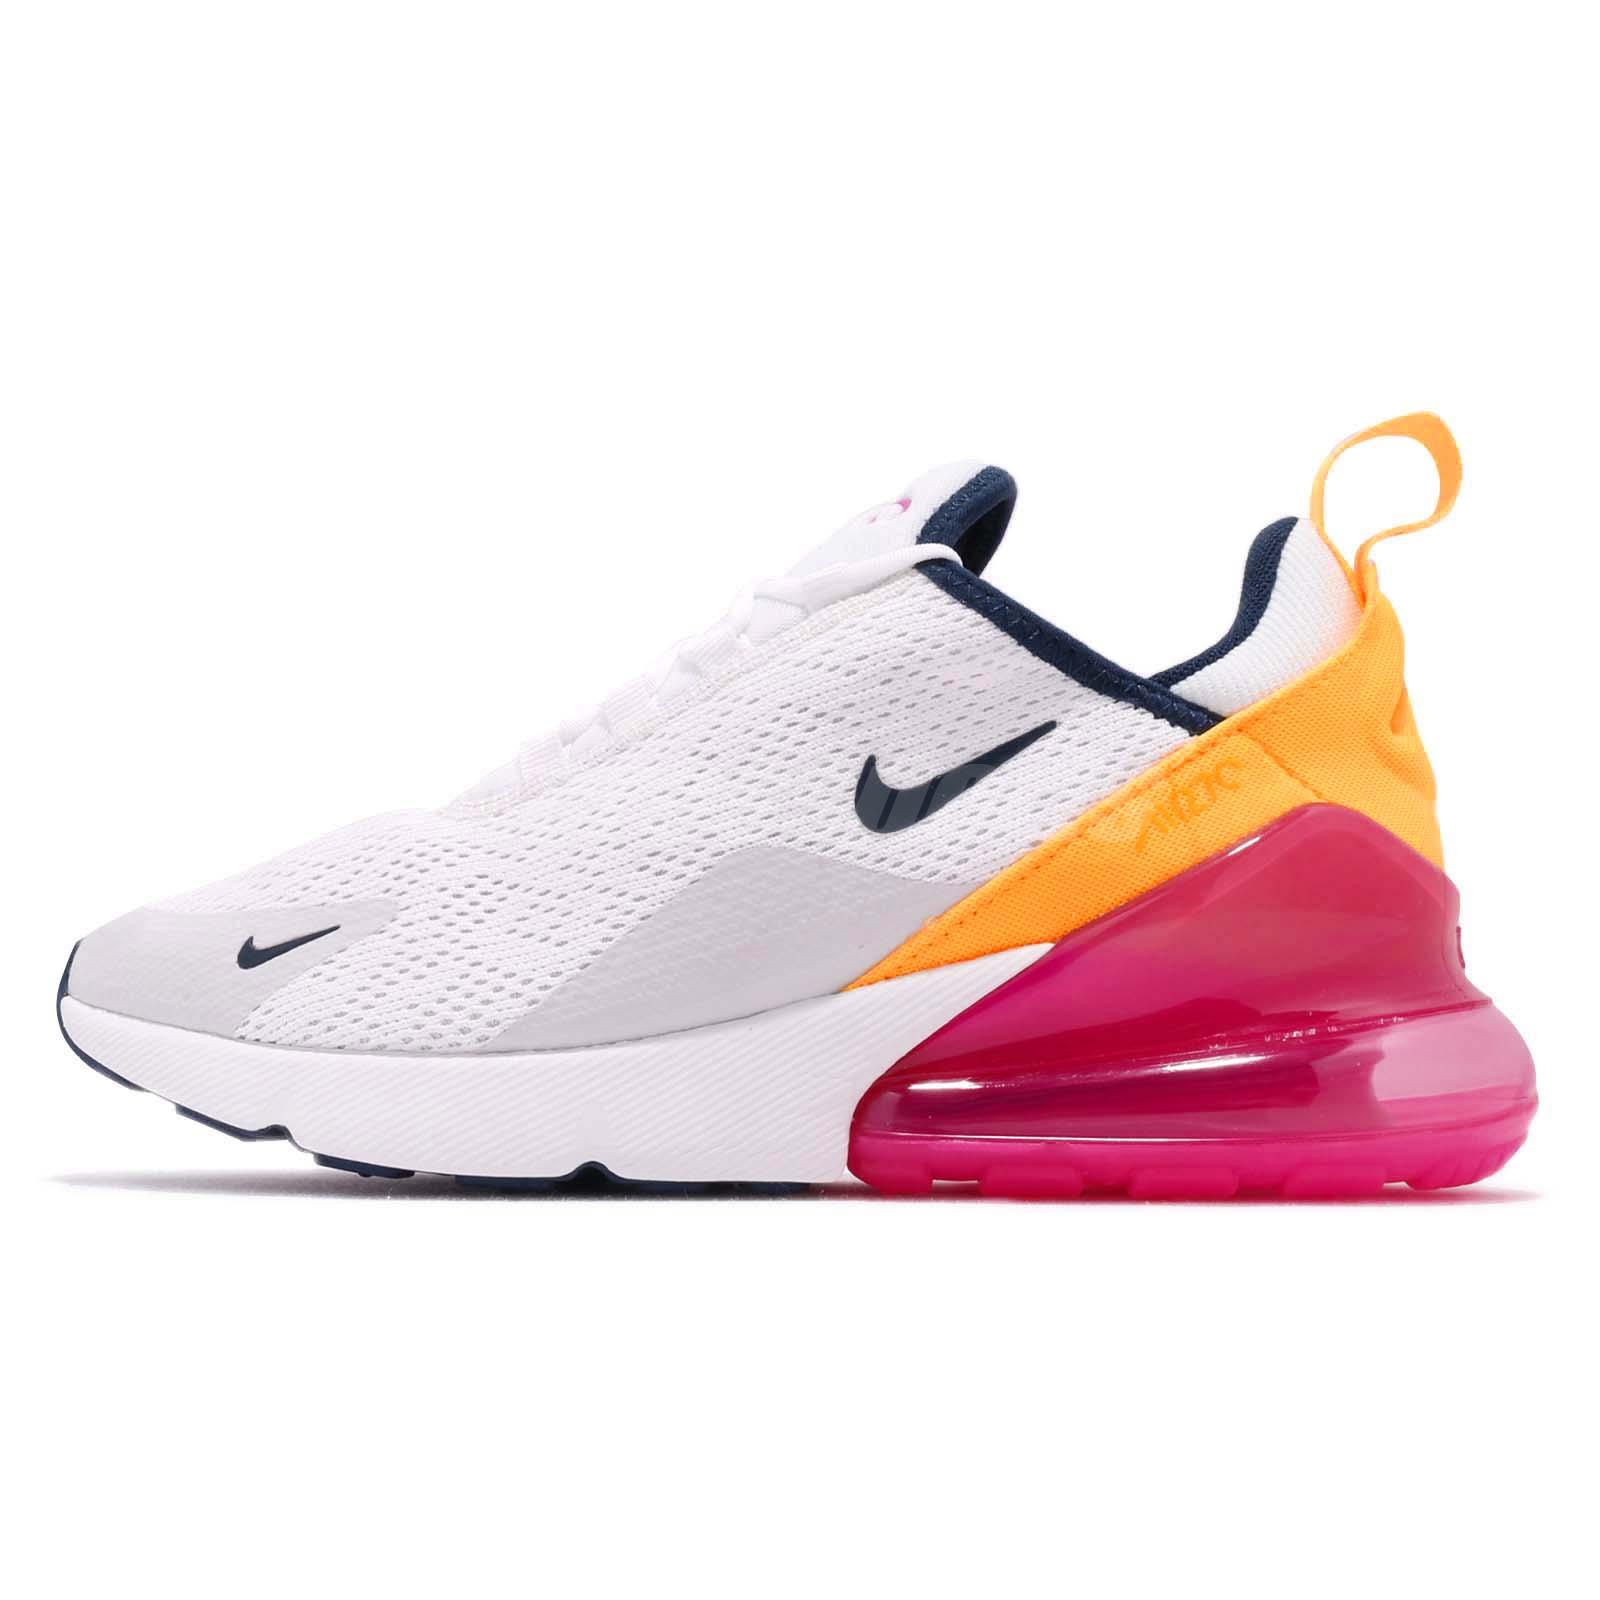 28e29c40ea Nike Wmns Air Max 270 White Navy Pink Women Running Shoes Sneakers  AH6789-106